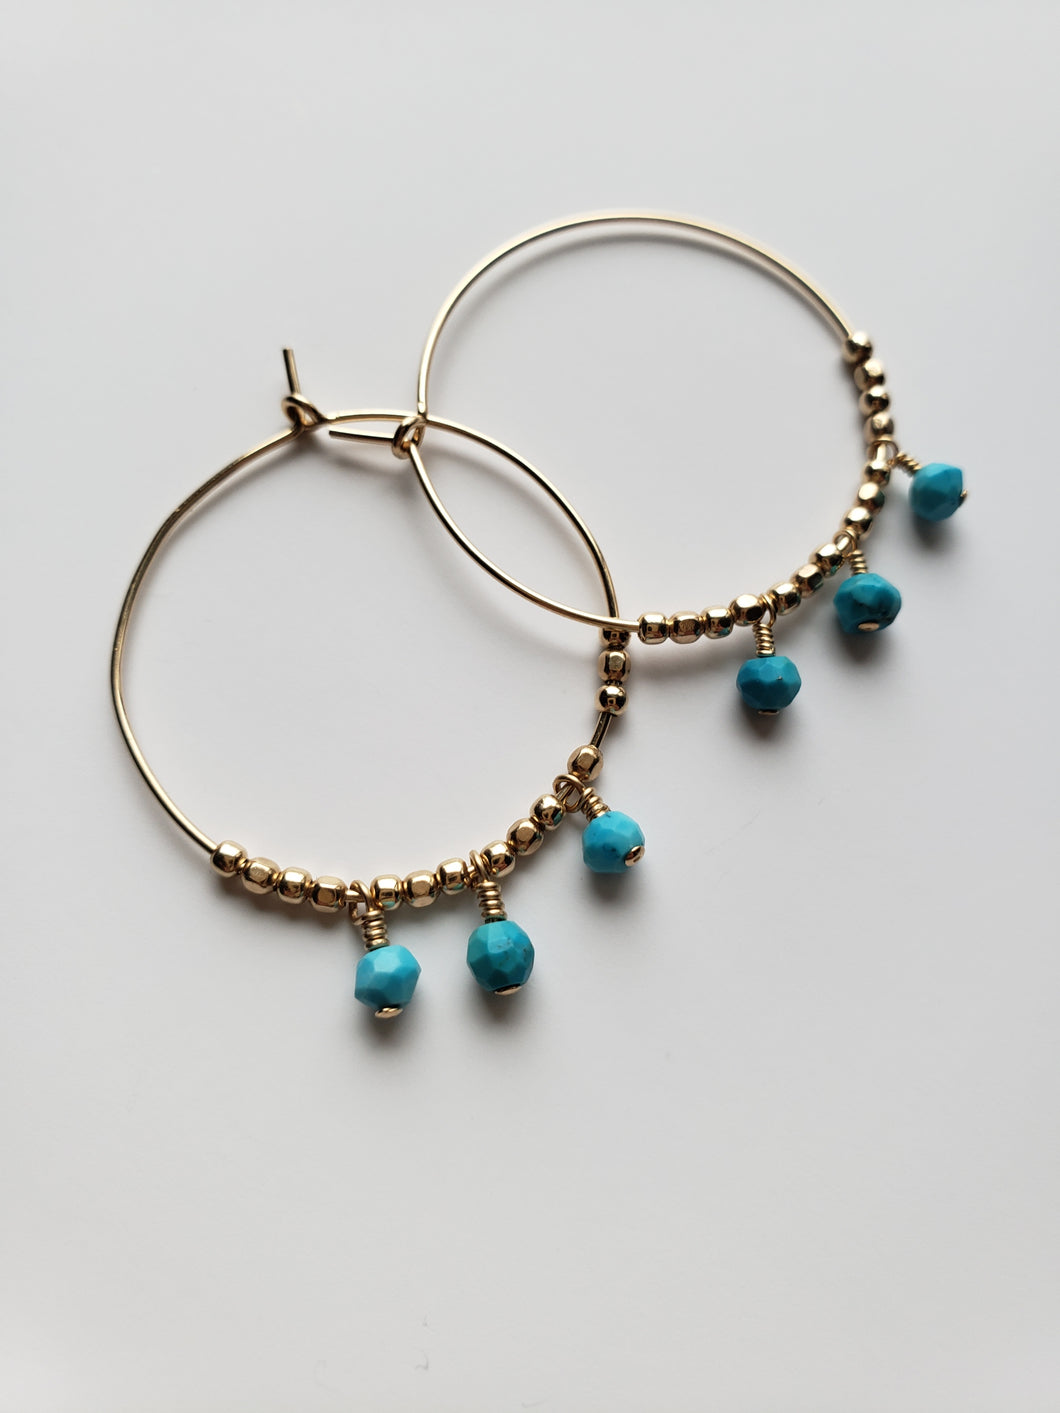 Beaded and Gemstone Hoop Earring - Small